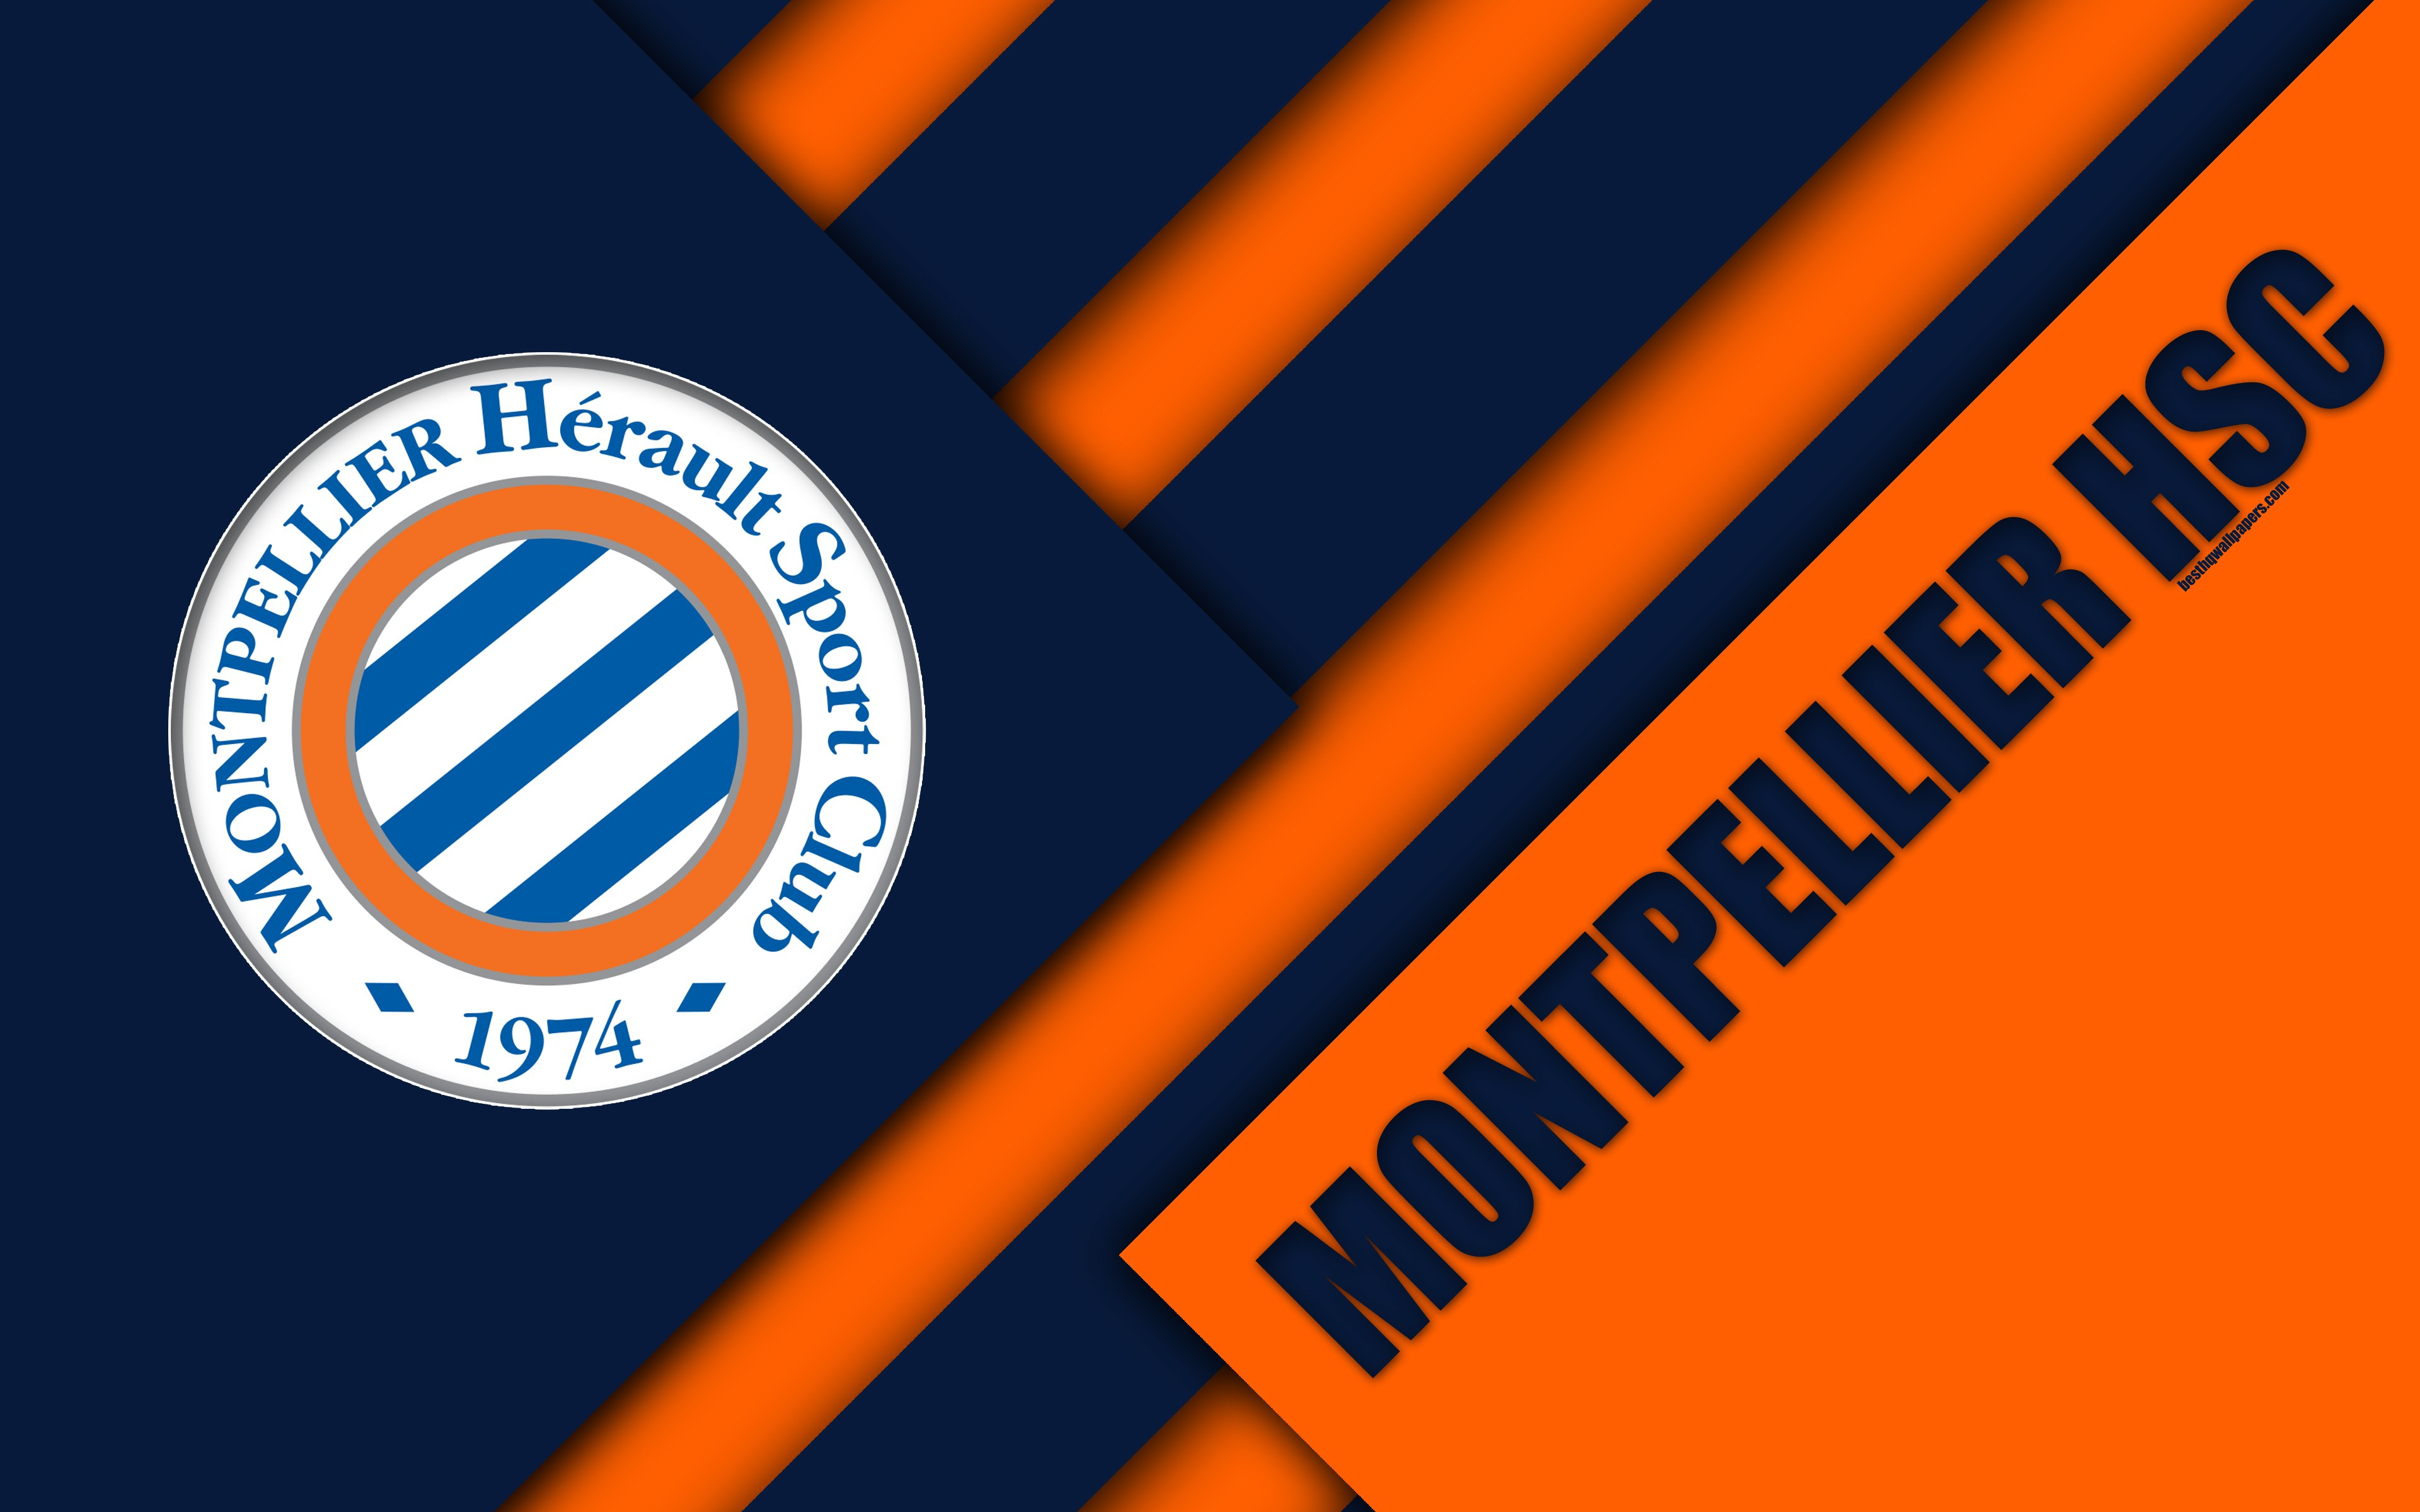 Download wallpapers Montpellier HSC, 4k, material design, logo